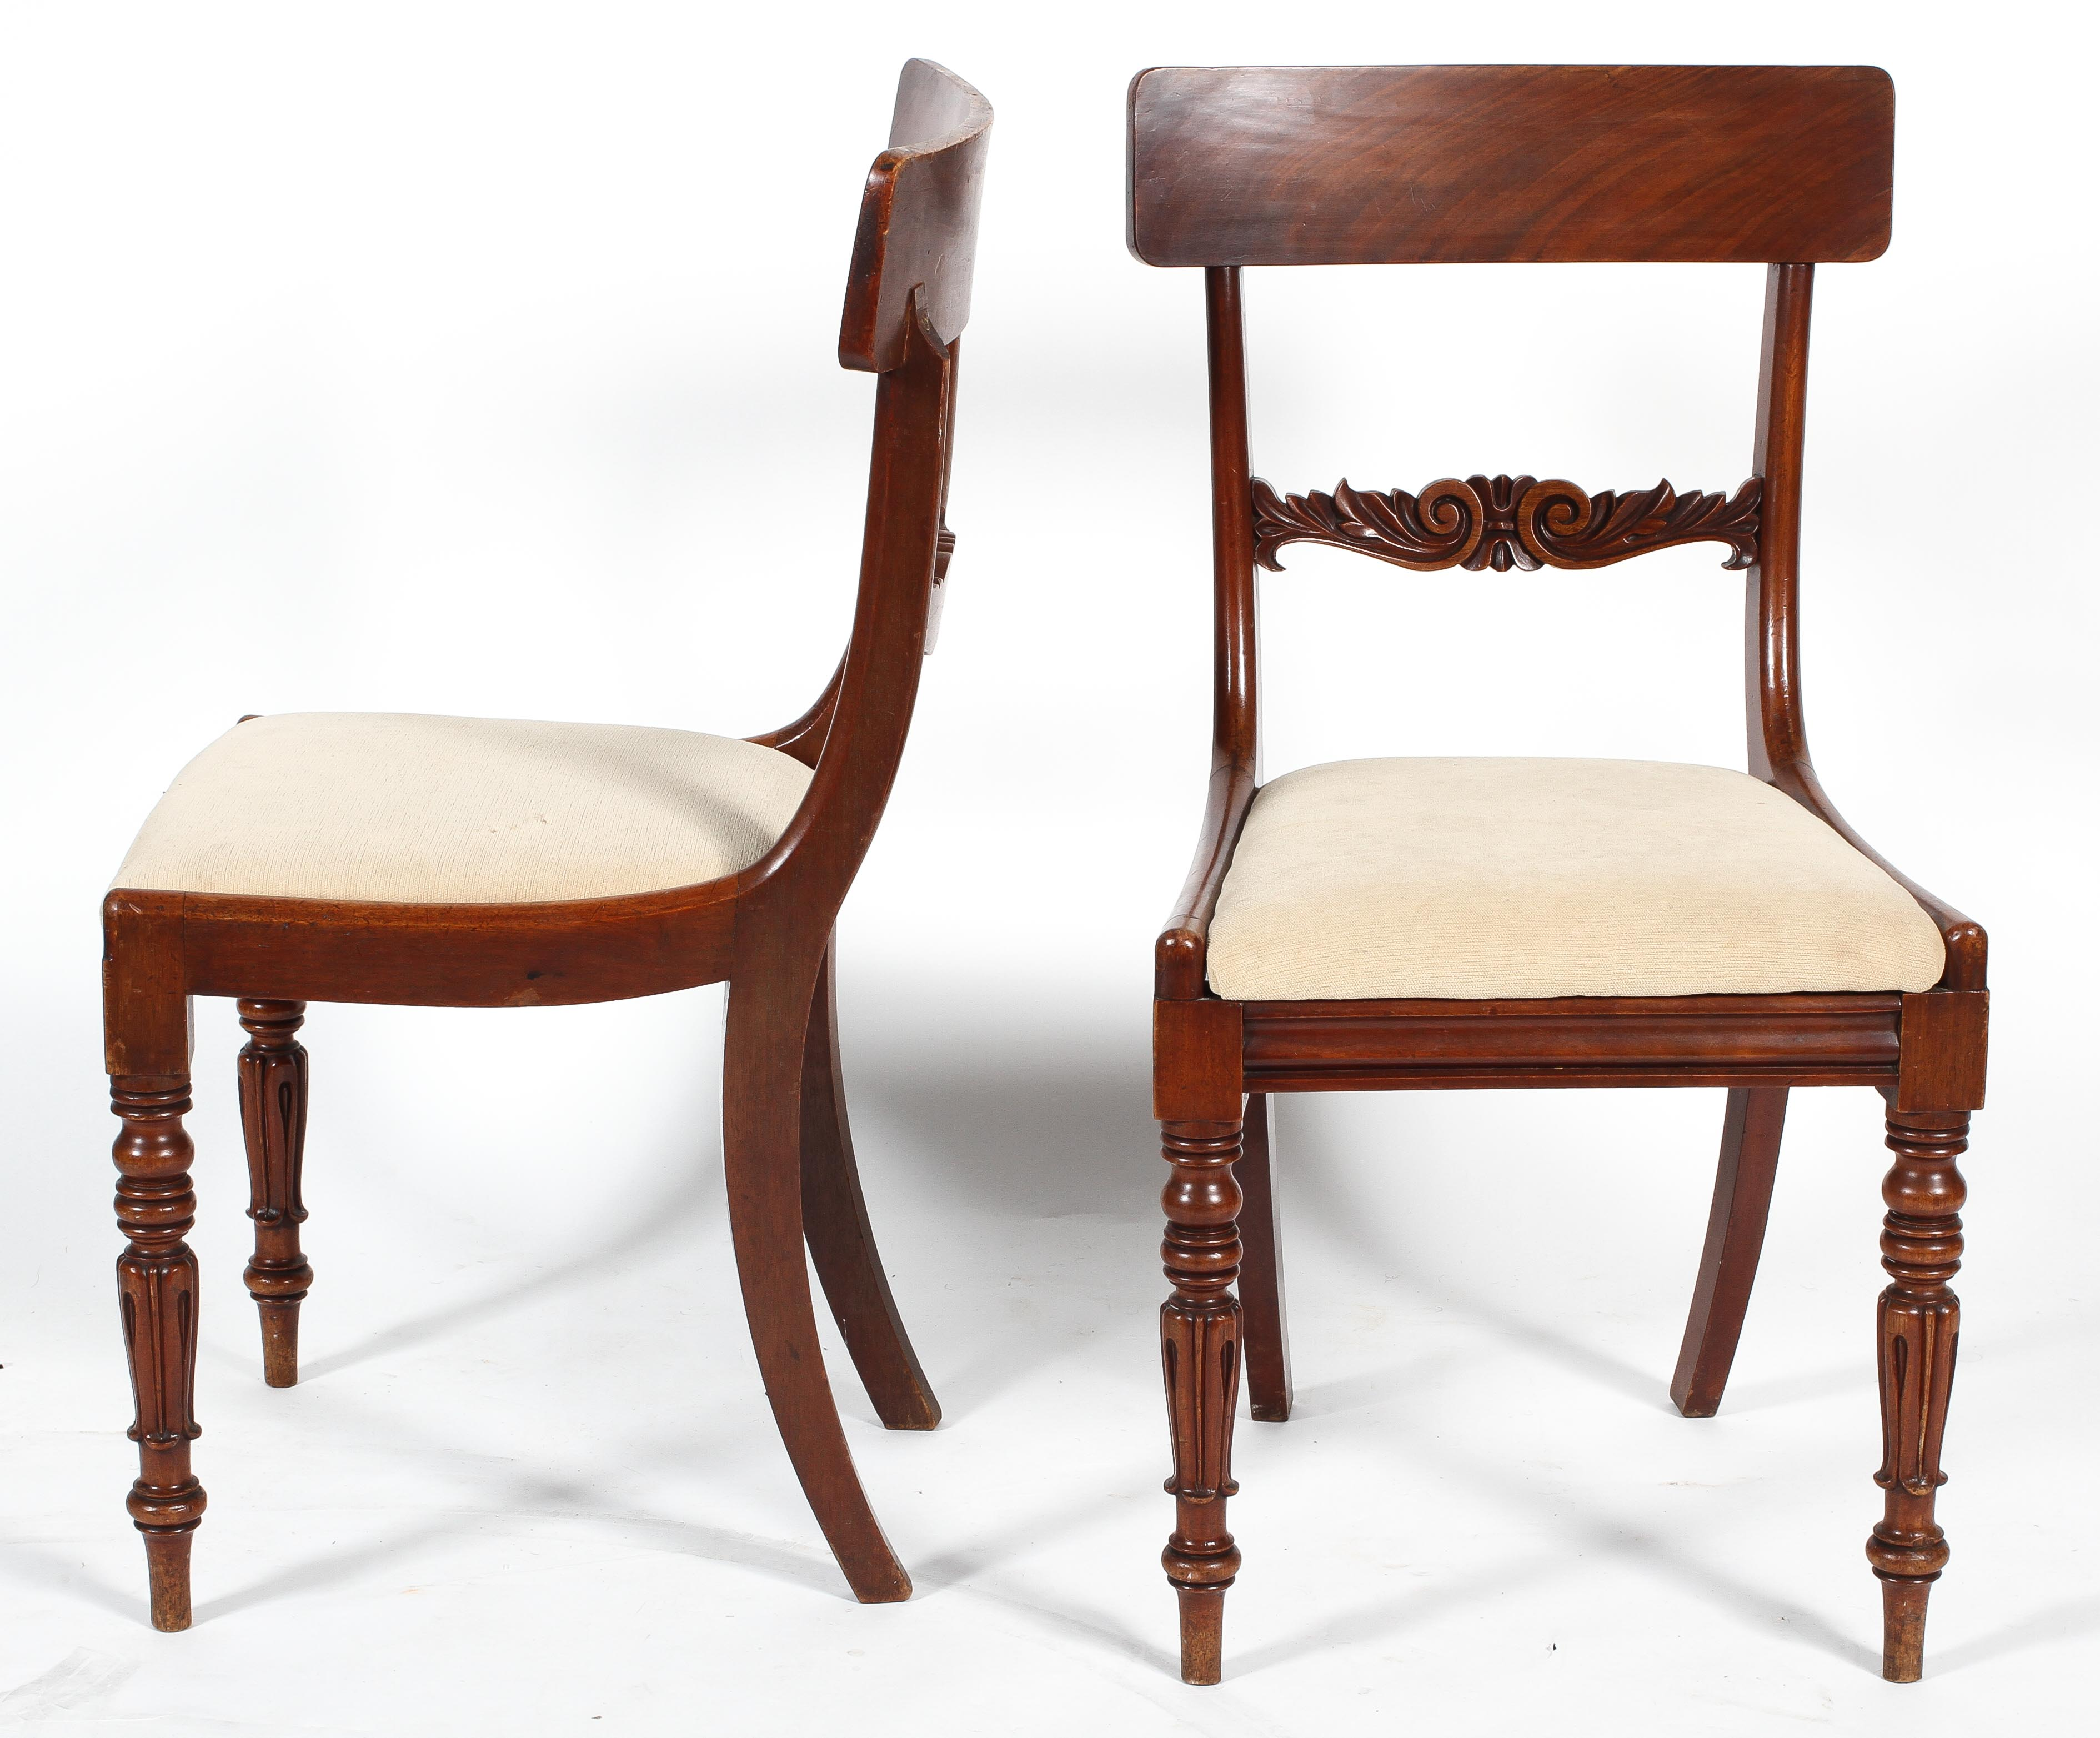 A pair of Regency style mahogany dining chairs with bar backs, drop in seats and turned front legs, - Image 2 of 2